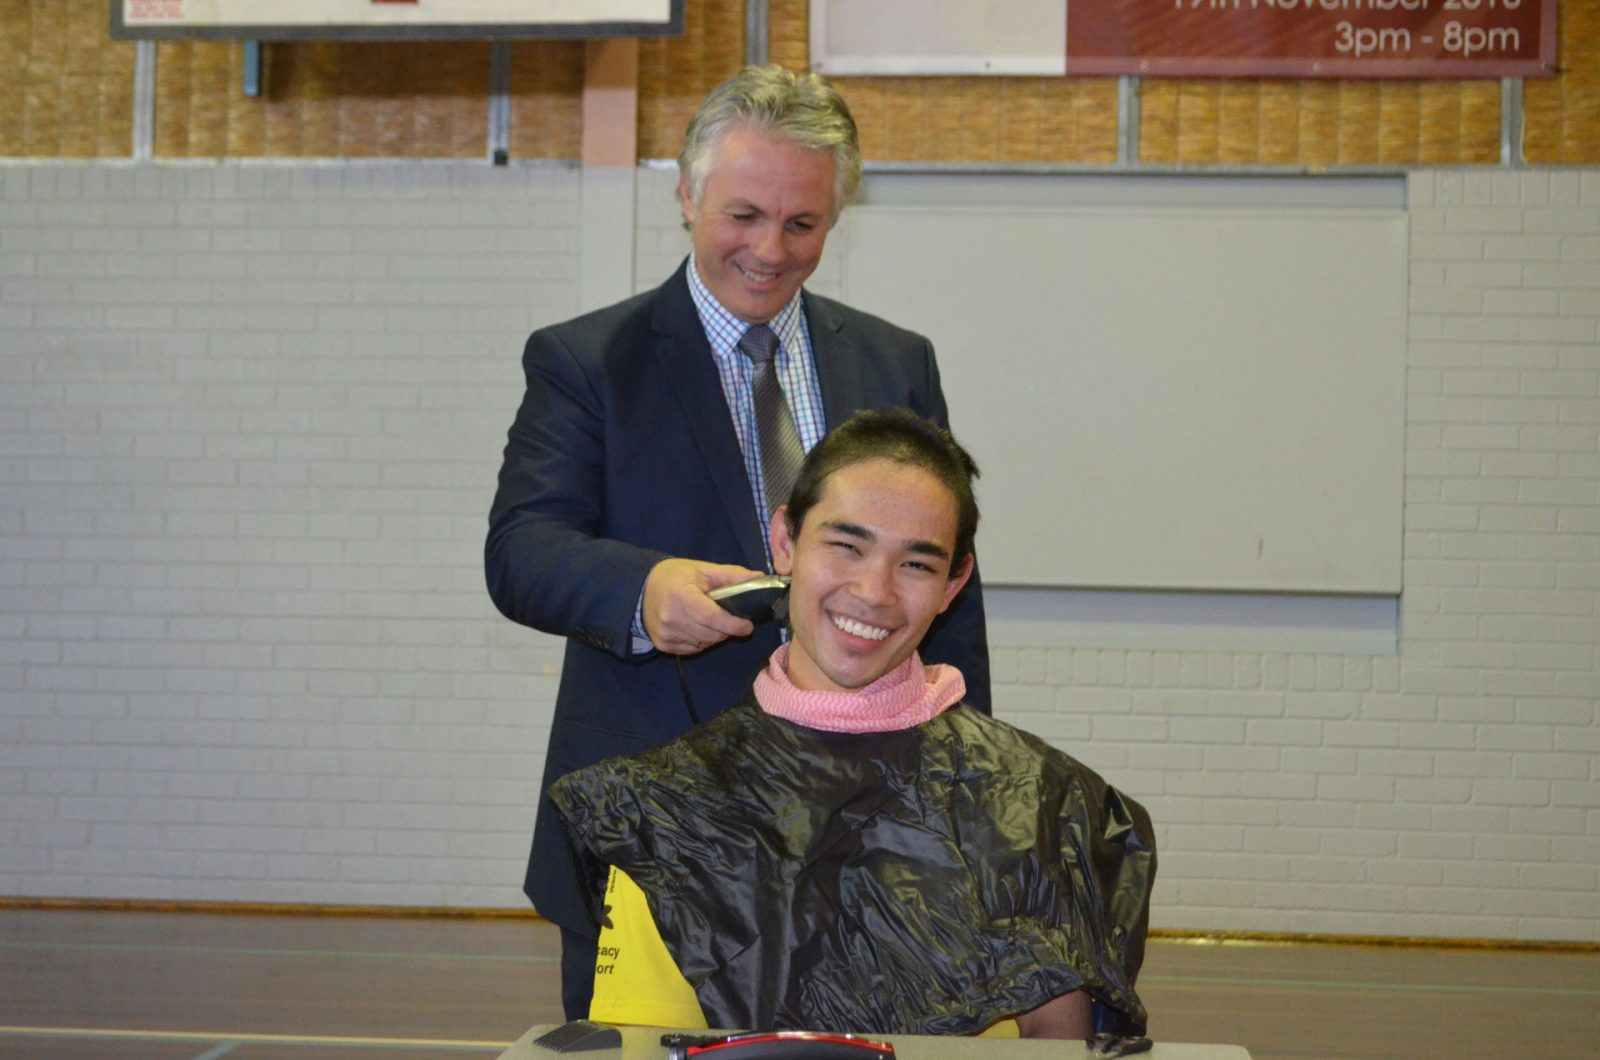 Shave for a cure